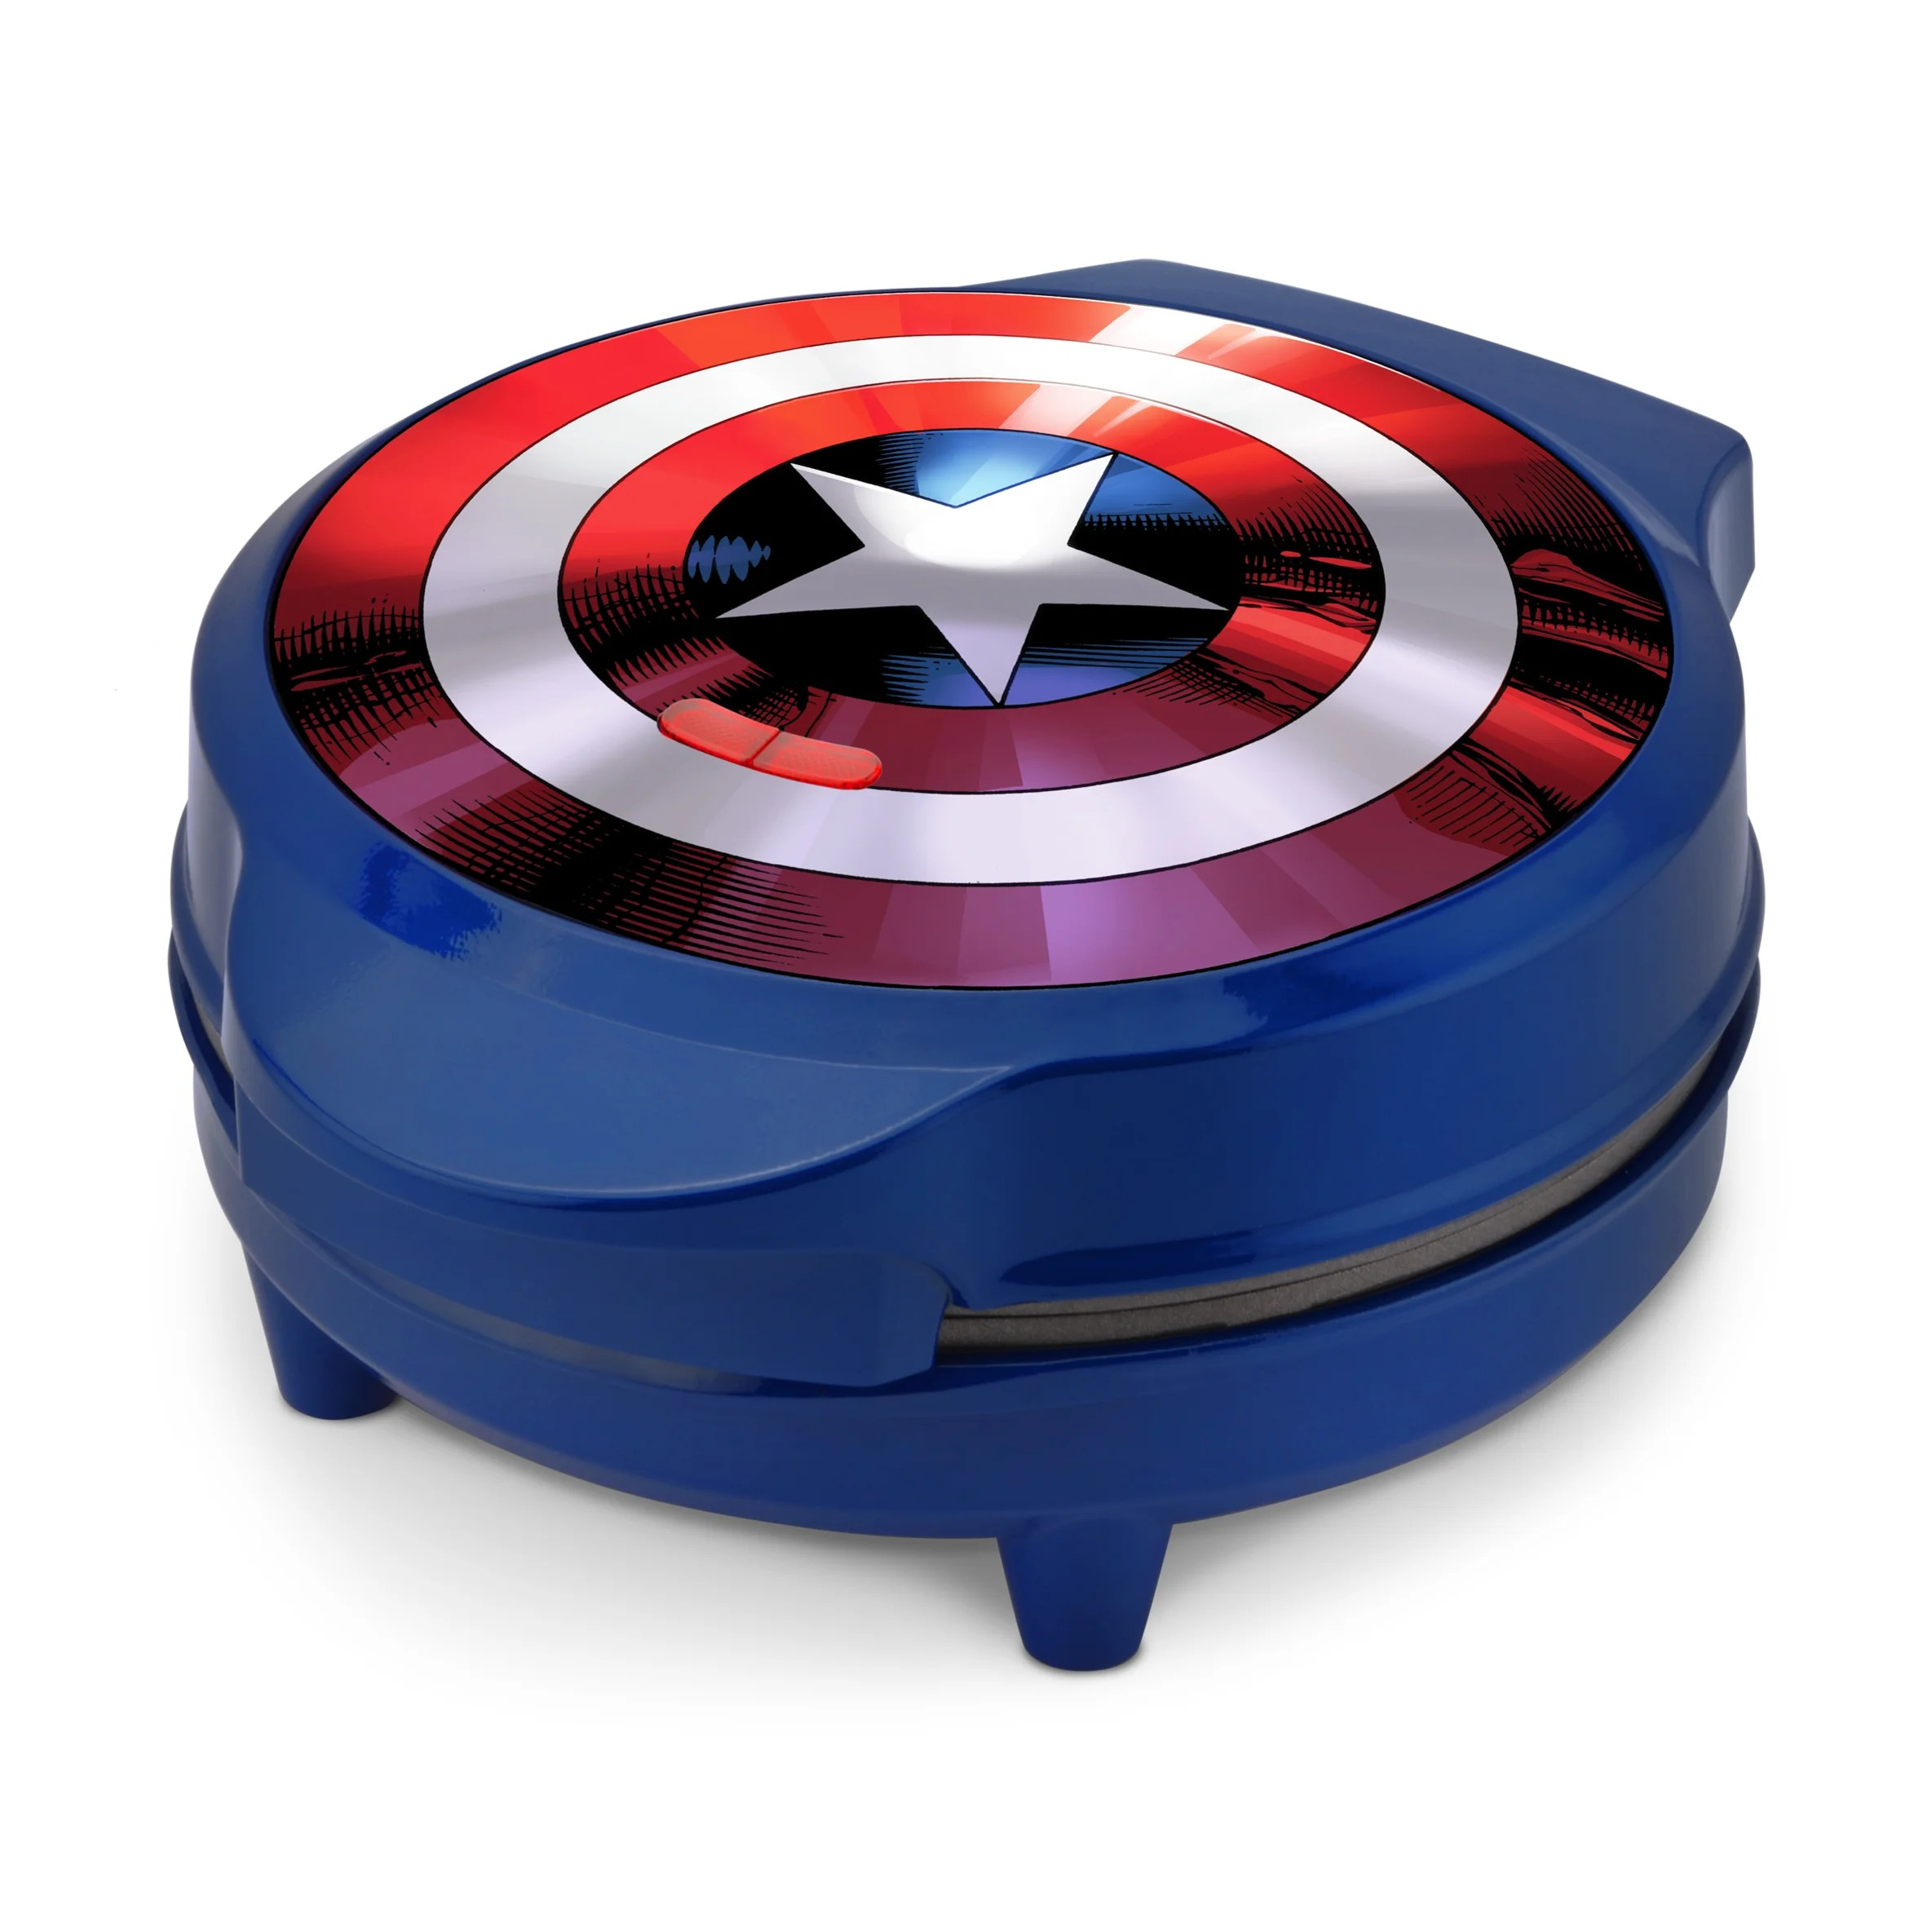 captain america table and chair set wheelchair marvel shield waffle maker wayfair